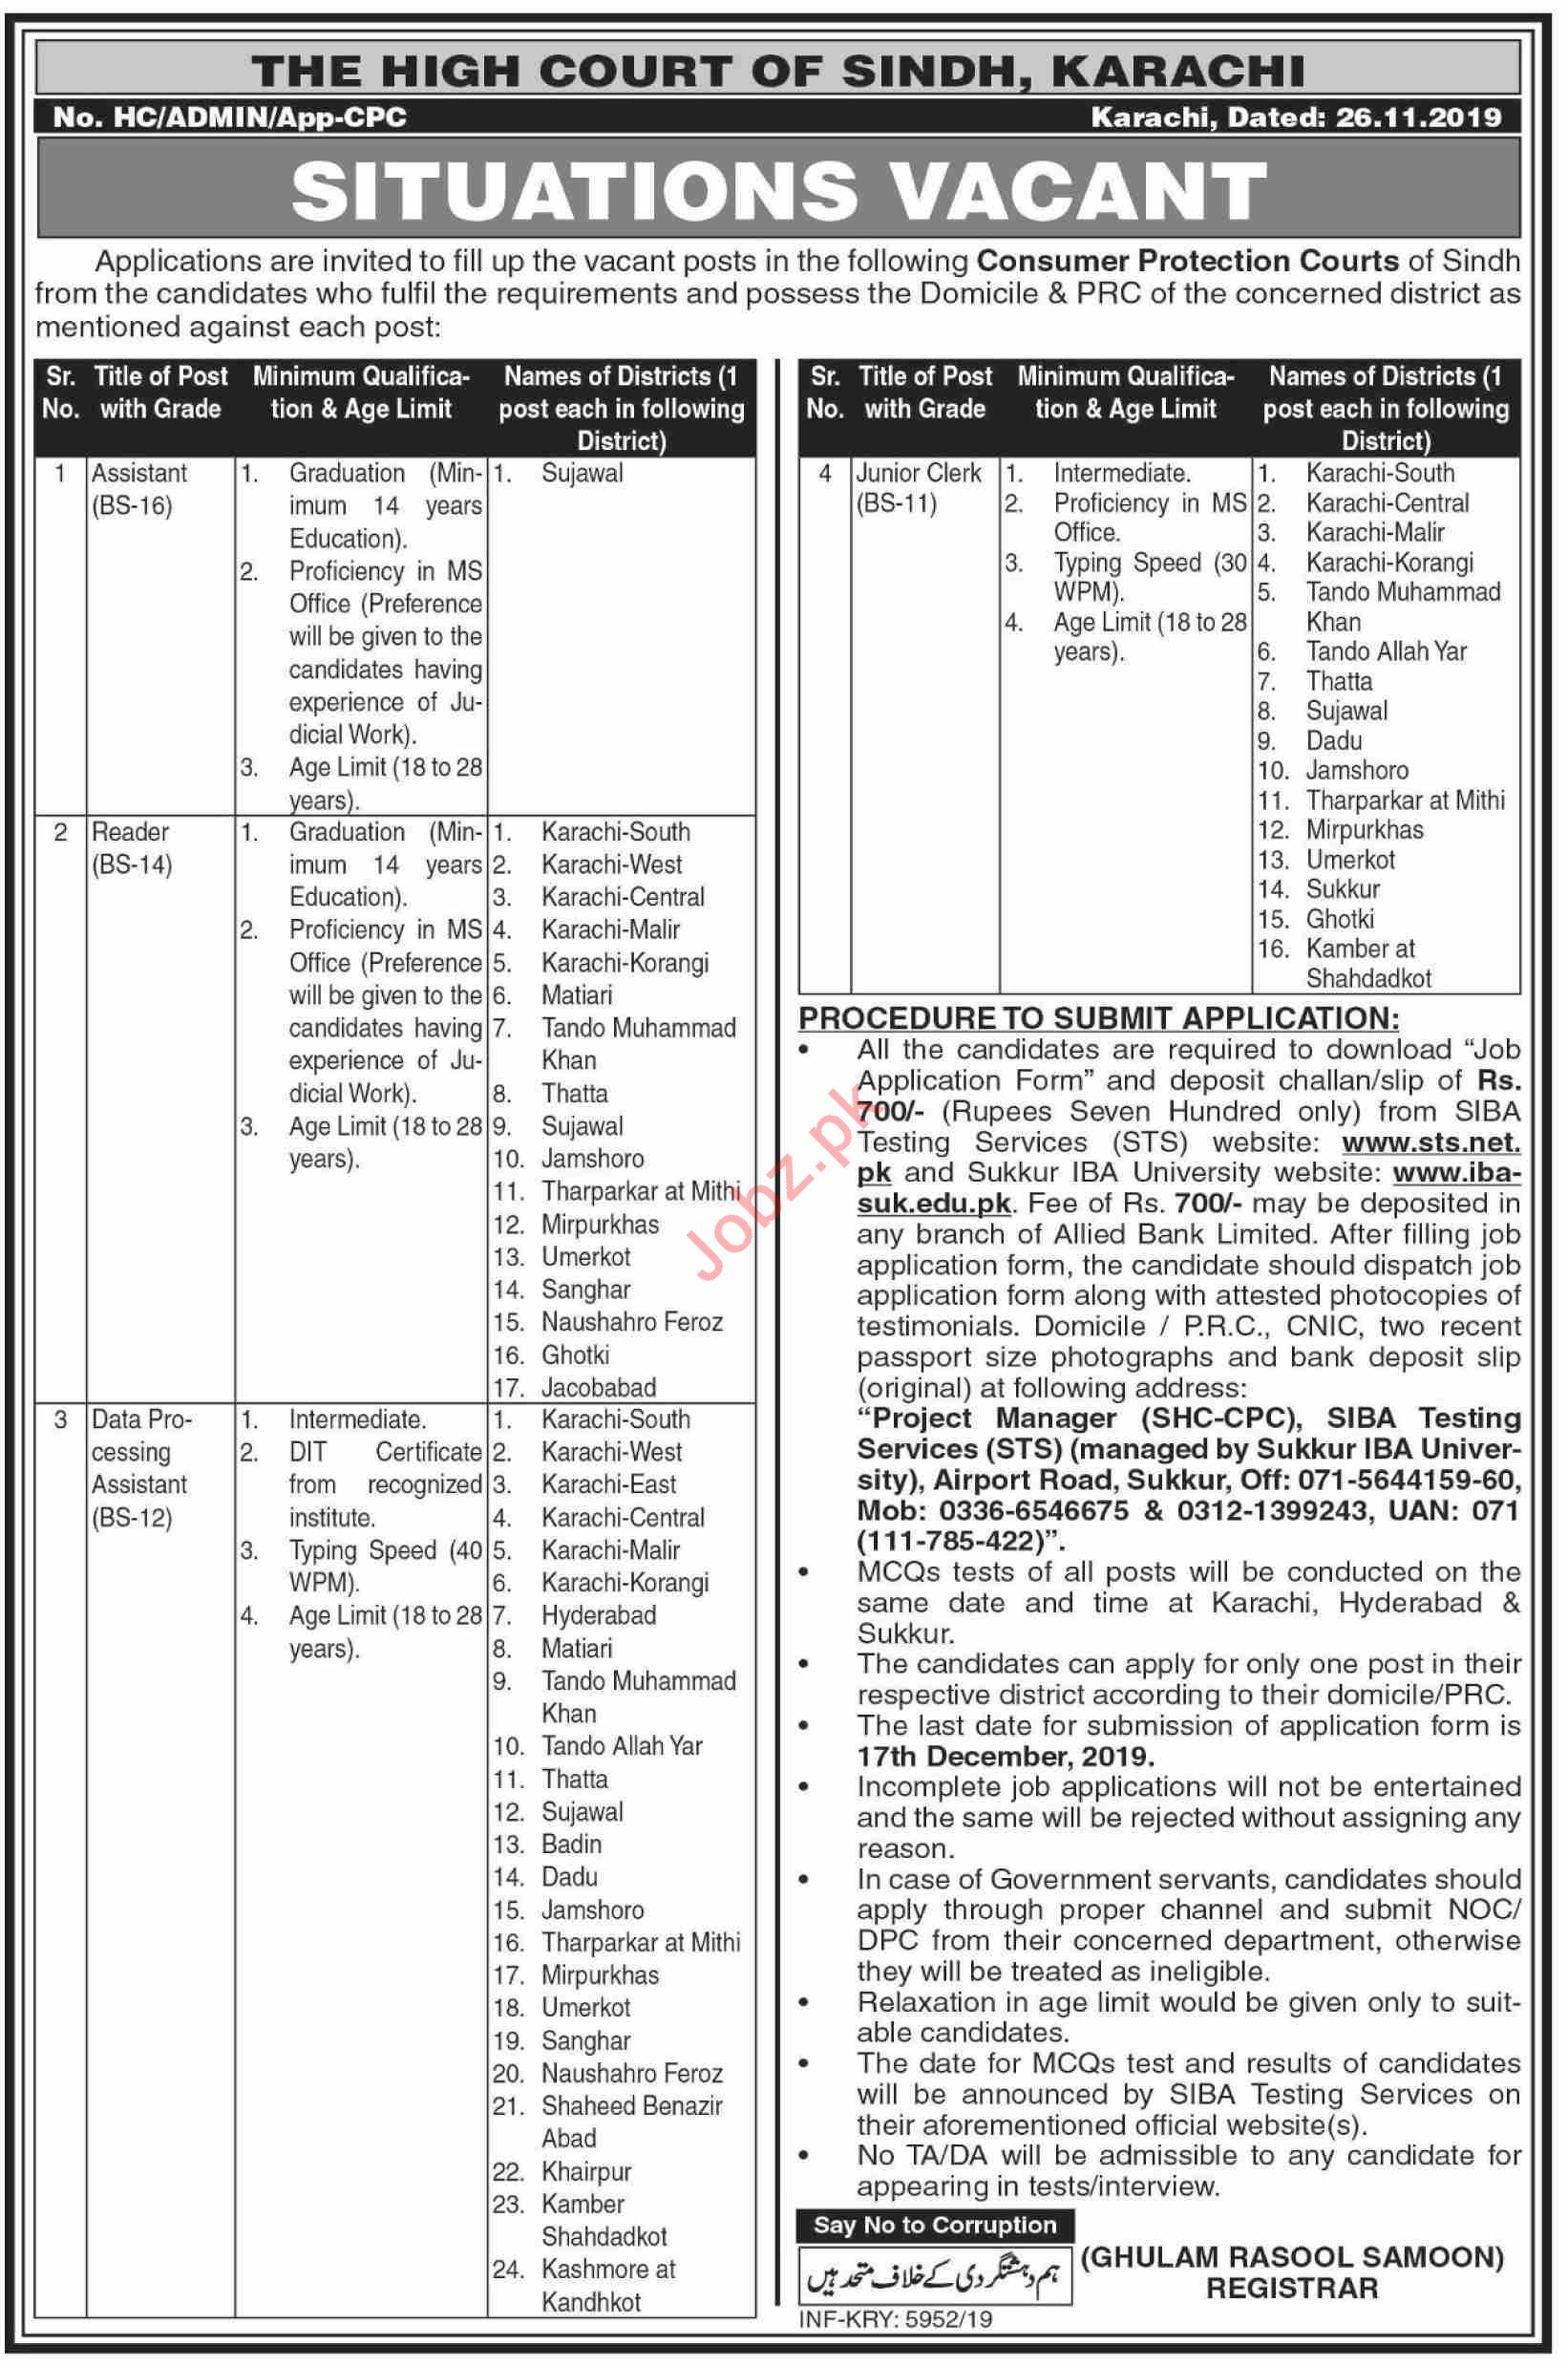 High Court of Sindh Jobs 2019 for Data Processing Assistant